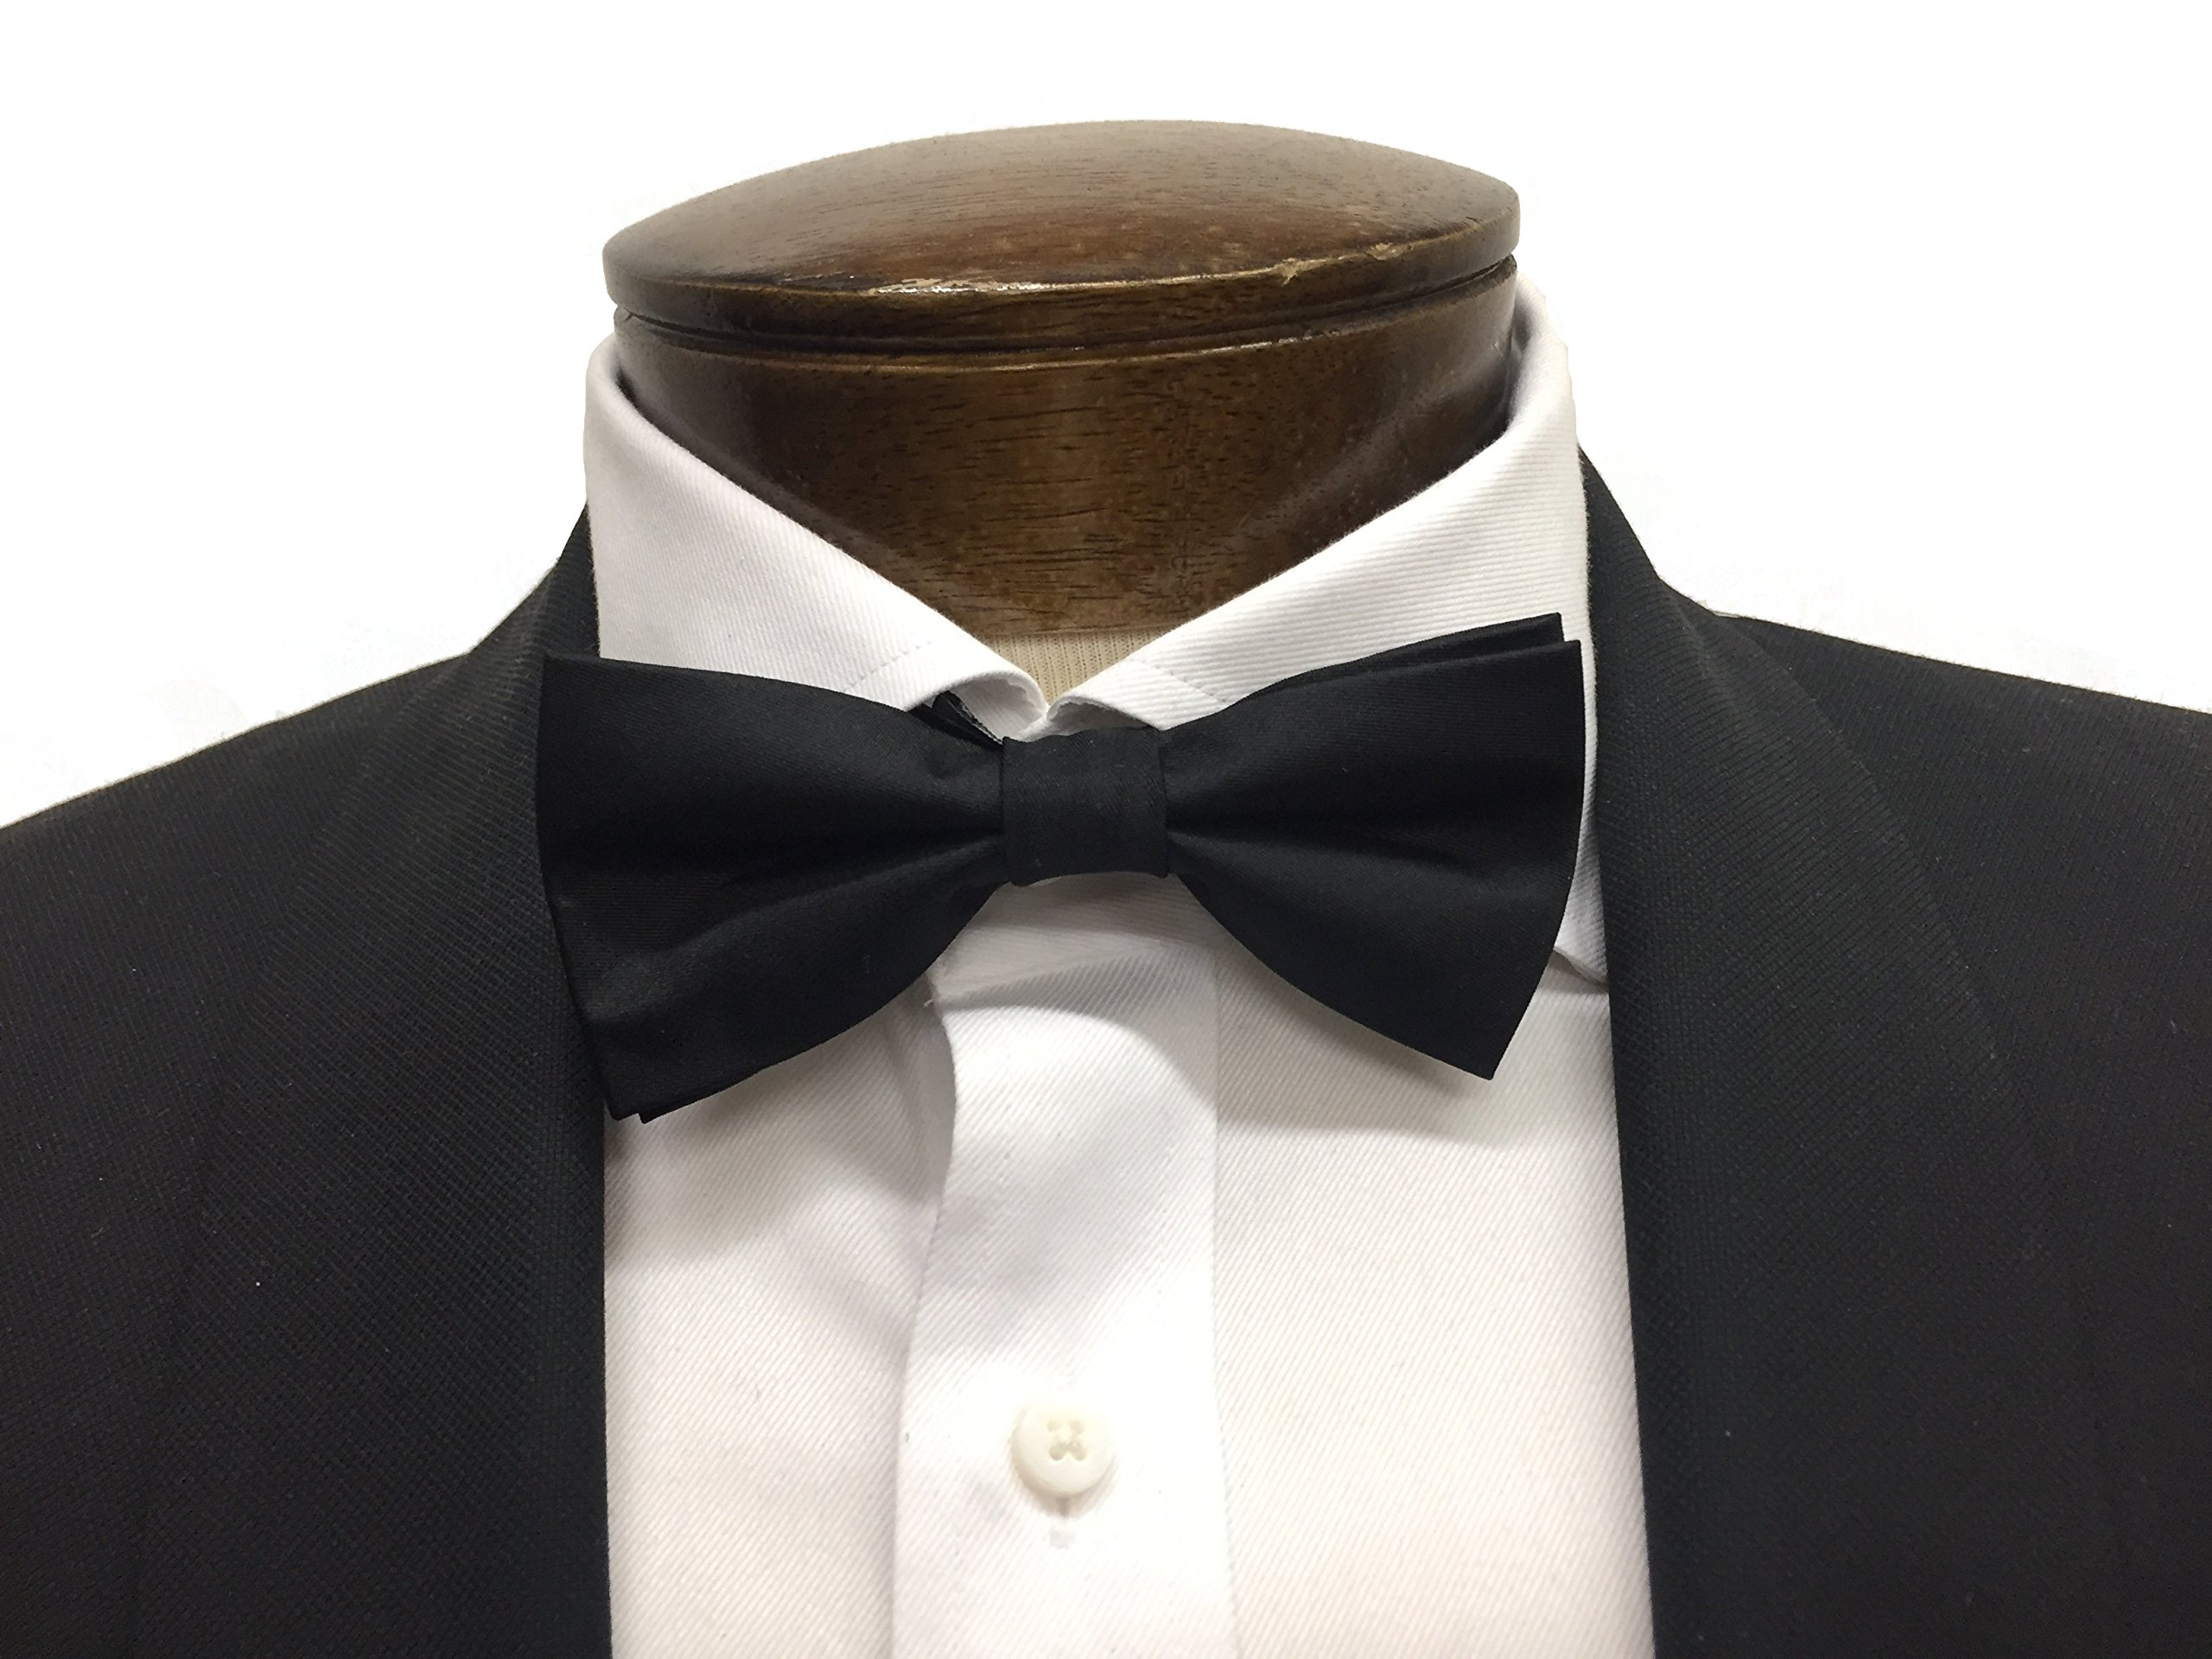 100% Black Satin Silk Bow Tie with Classic Modern Shape (Pre-Tied)